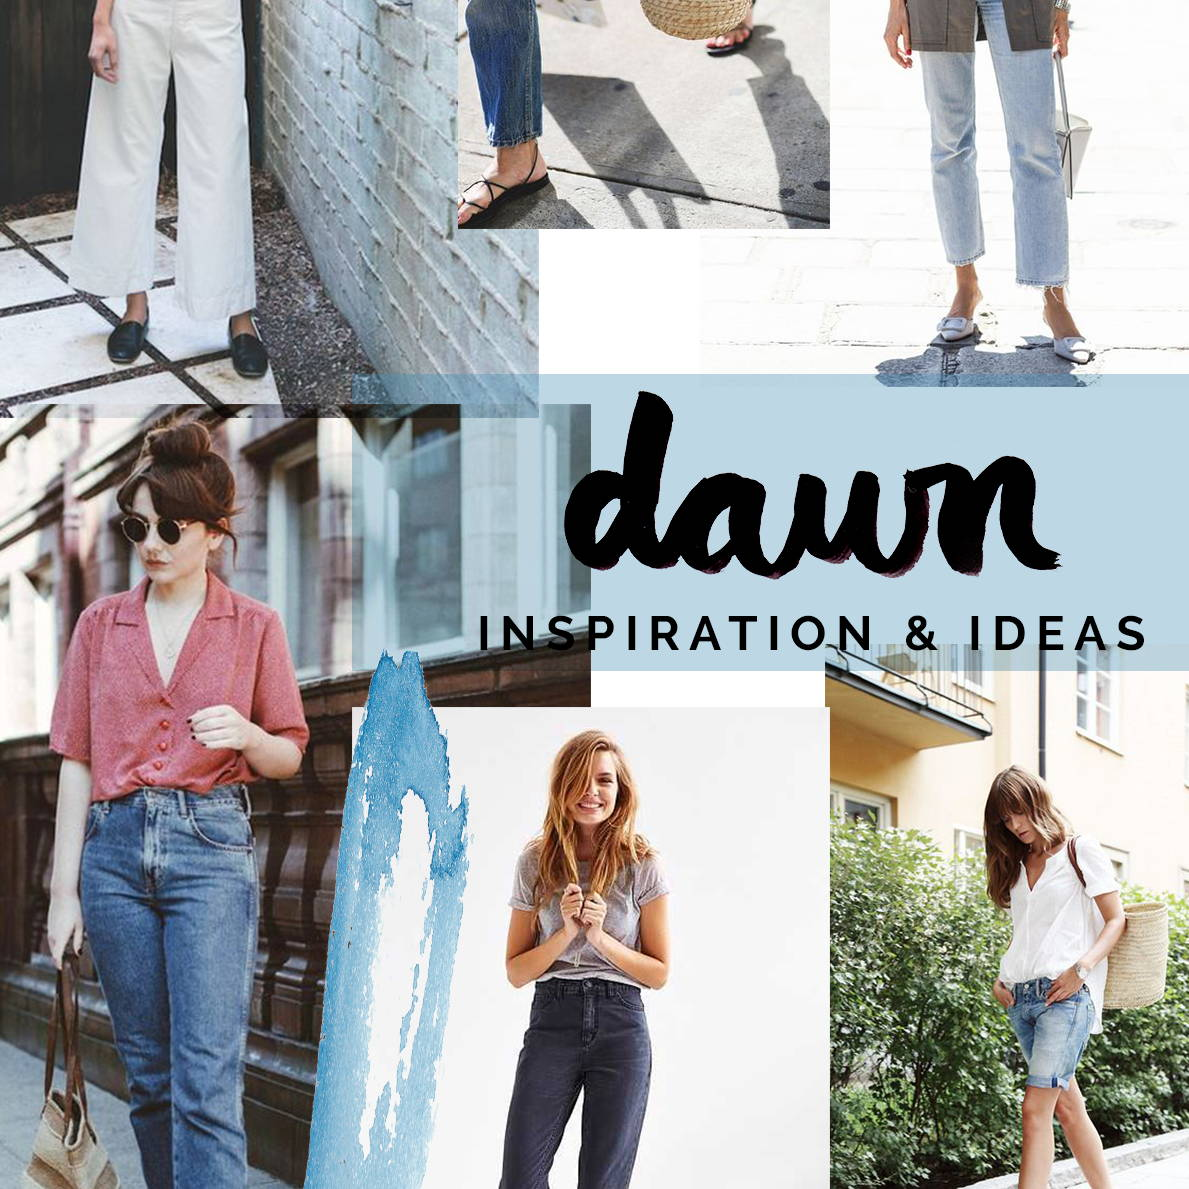 Dawn Inspiration & Ideas